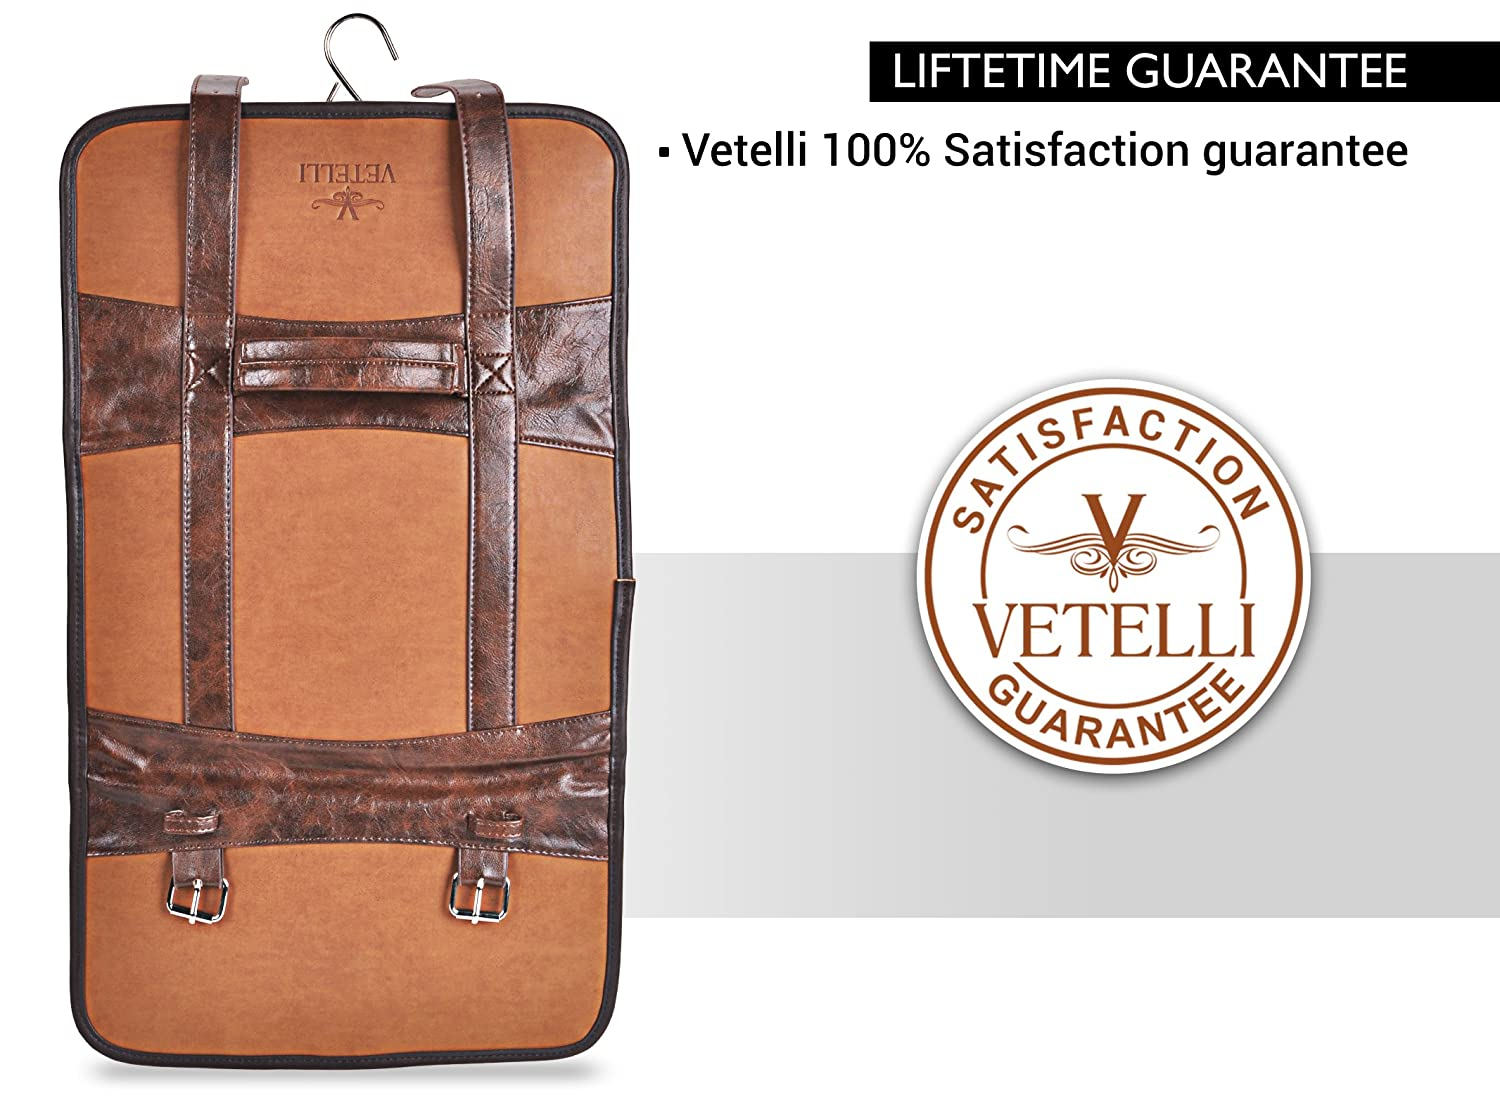 ab11ee67d9 Vetelli Hanging Toiletry Bag for Men - Dopp Kit   Travel Accessories Bag   Amazon.in  Bags